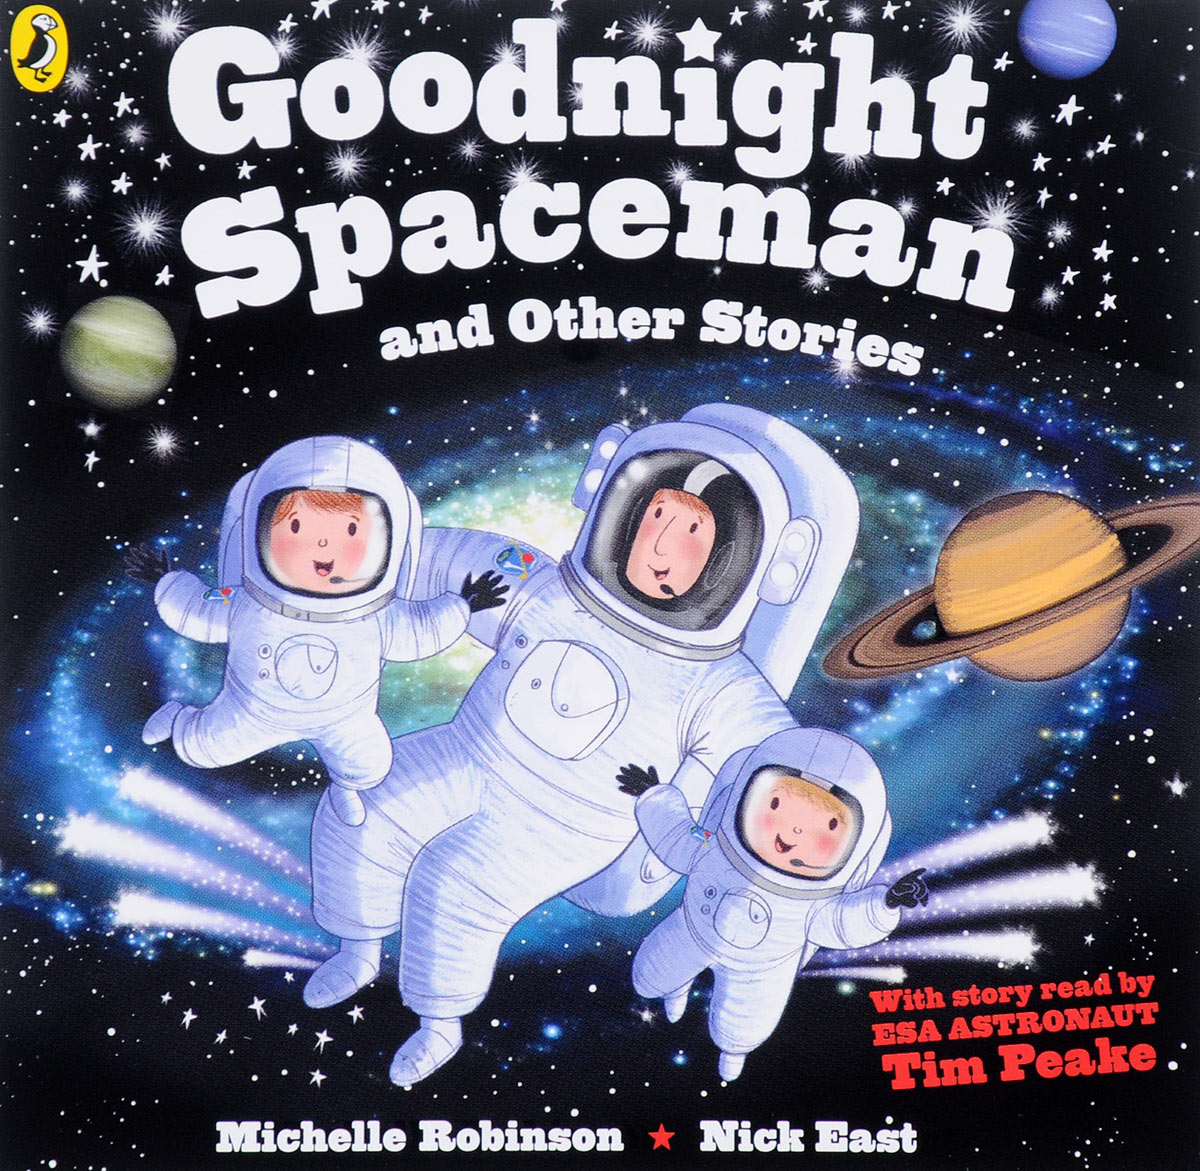 Goodnight Spaceman and Other Stories (аудиокнига MP3) includes